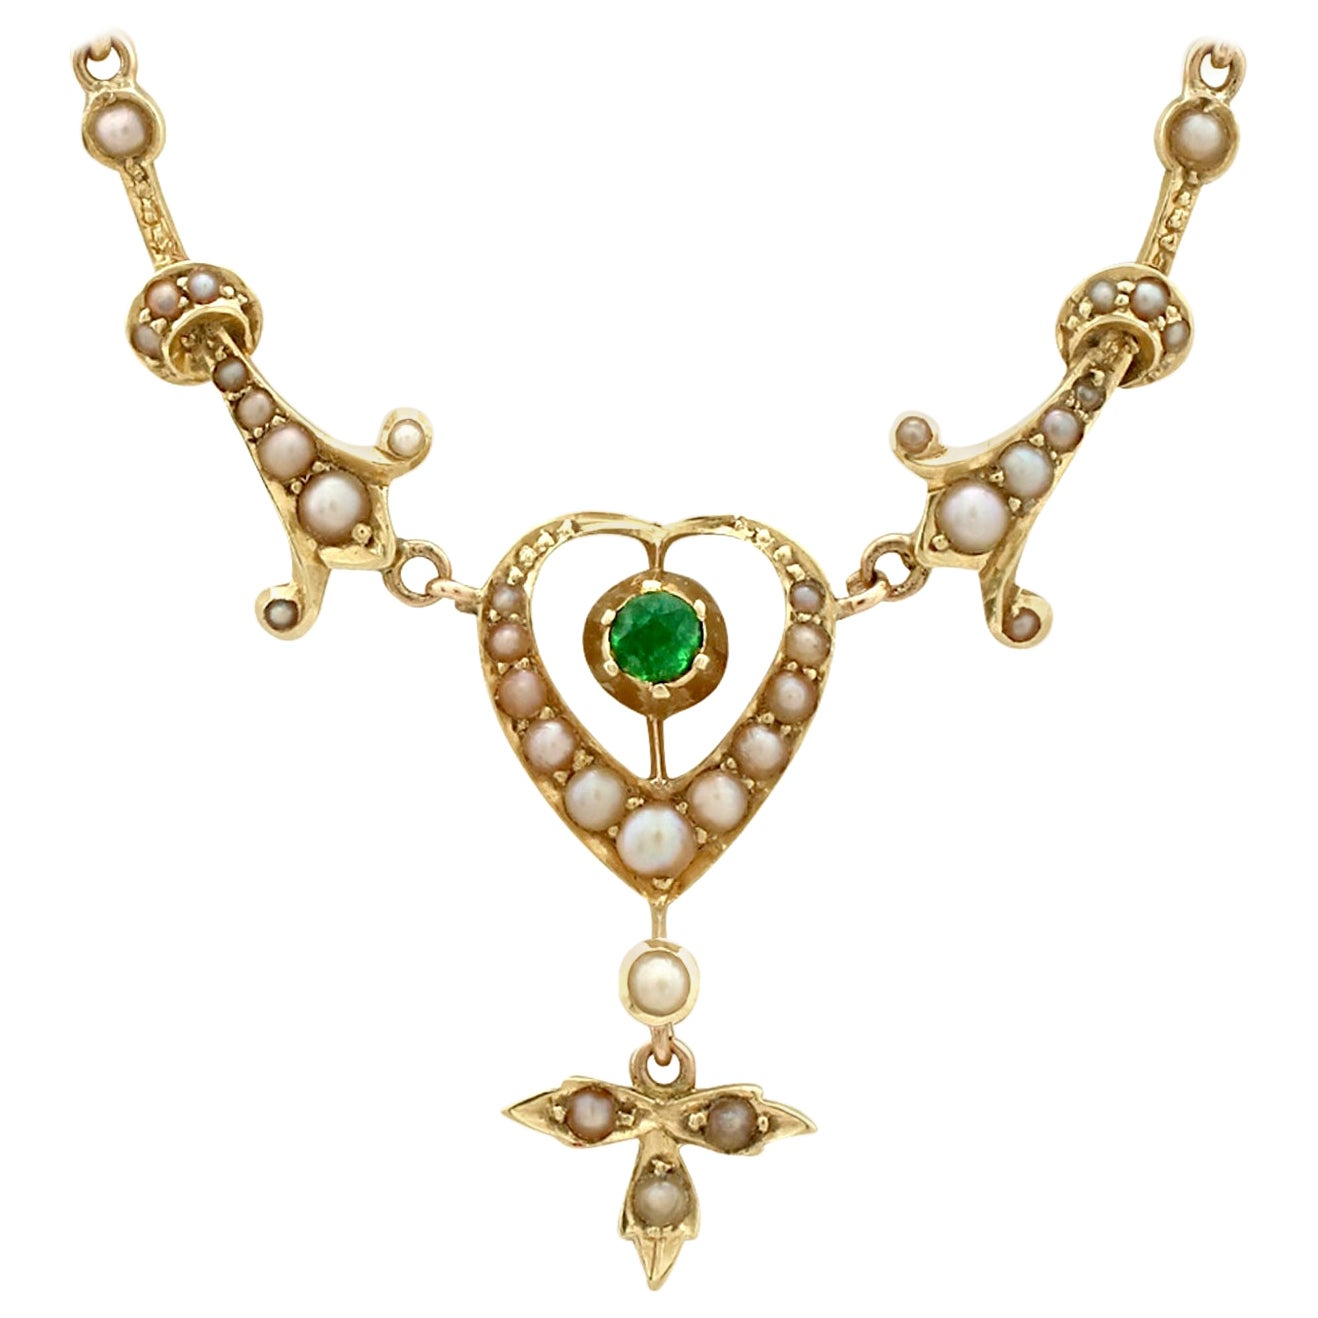 Antique 1890s Peridot and Seed Pearl Yellow Gold Necklace